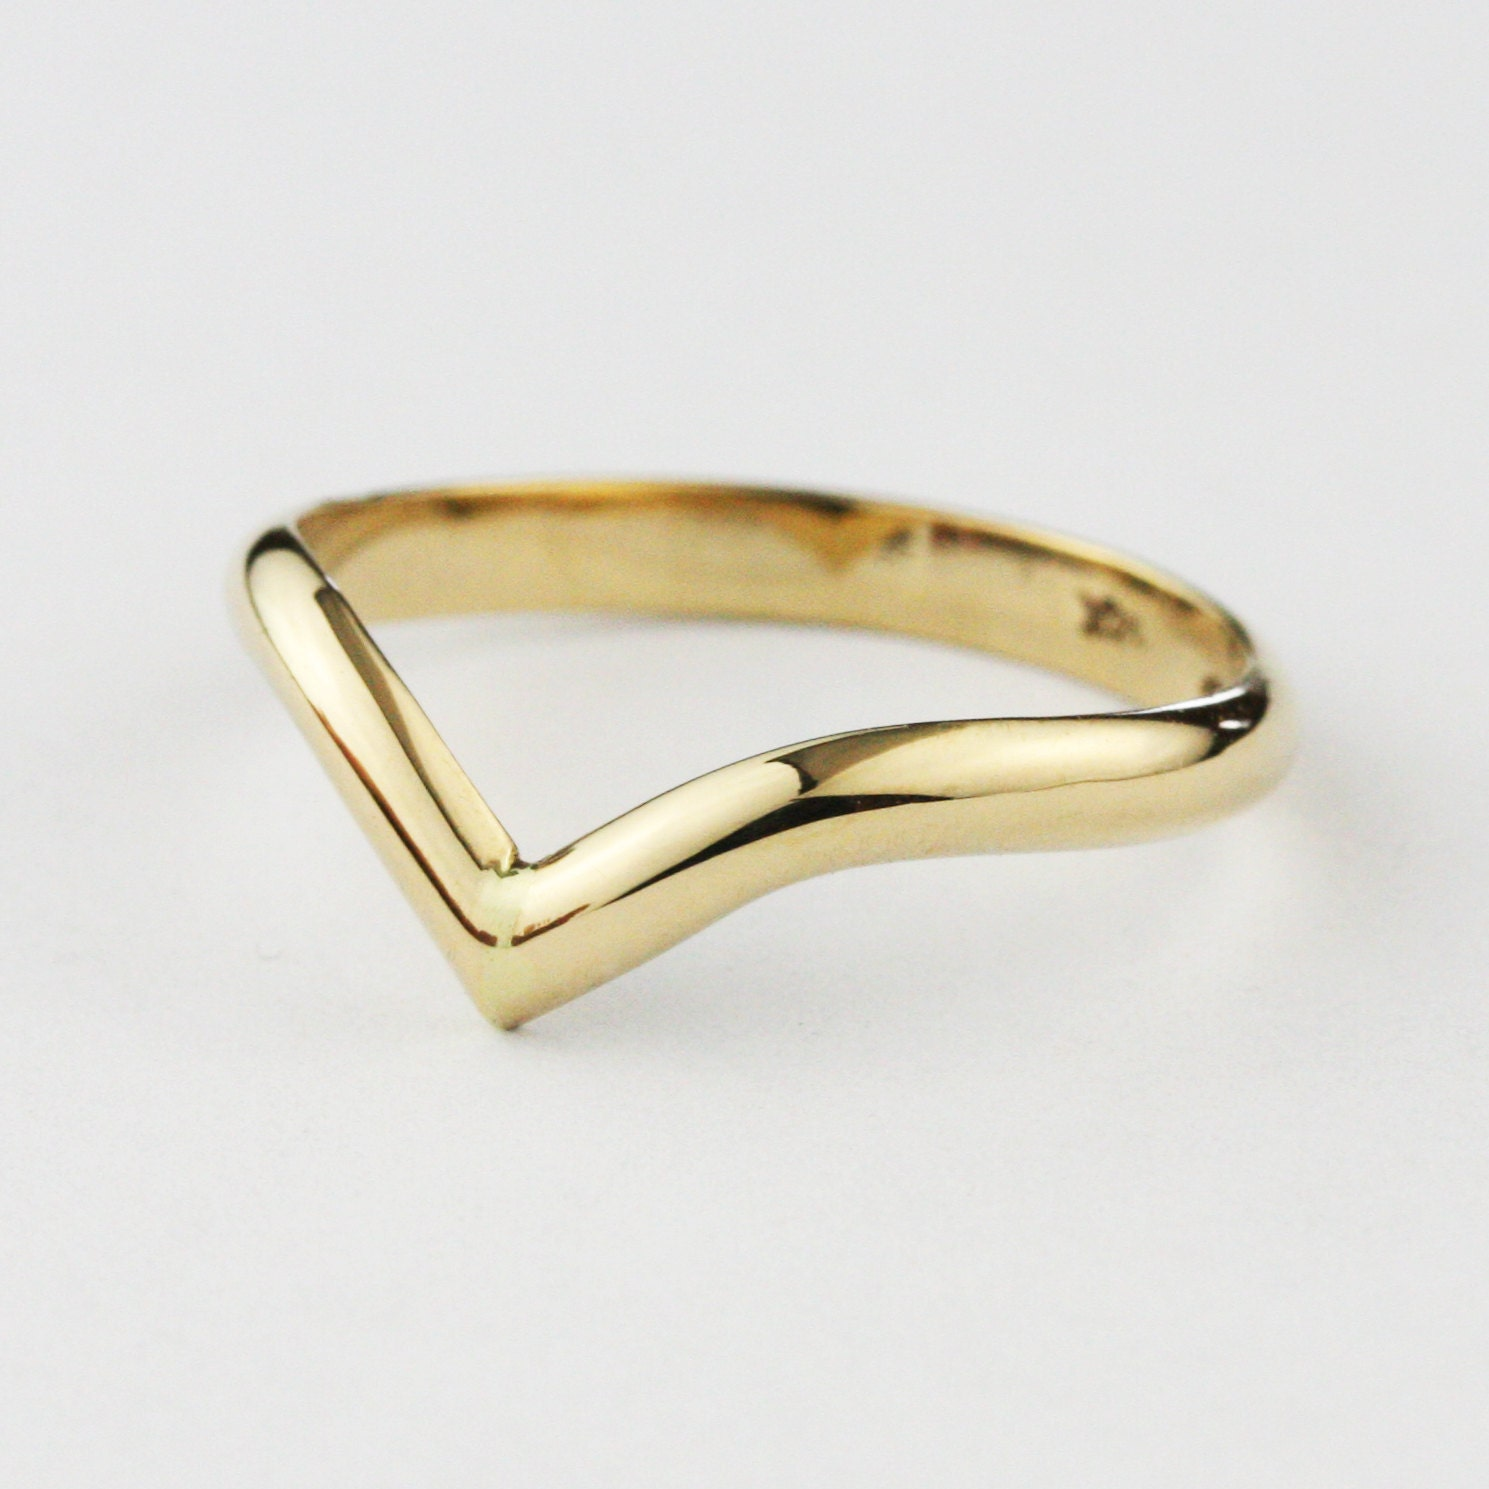 2 5 mm Solid Gold V Shaped Wedding Band Ring 14K 18k